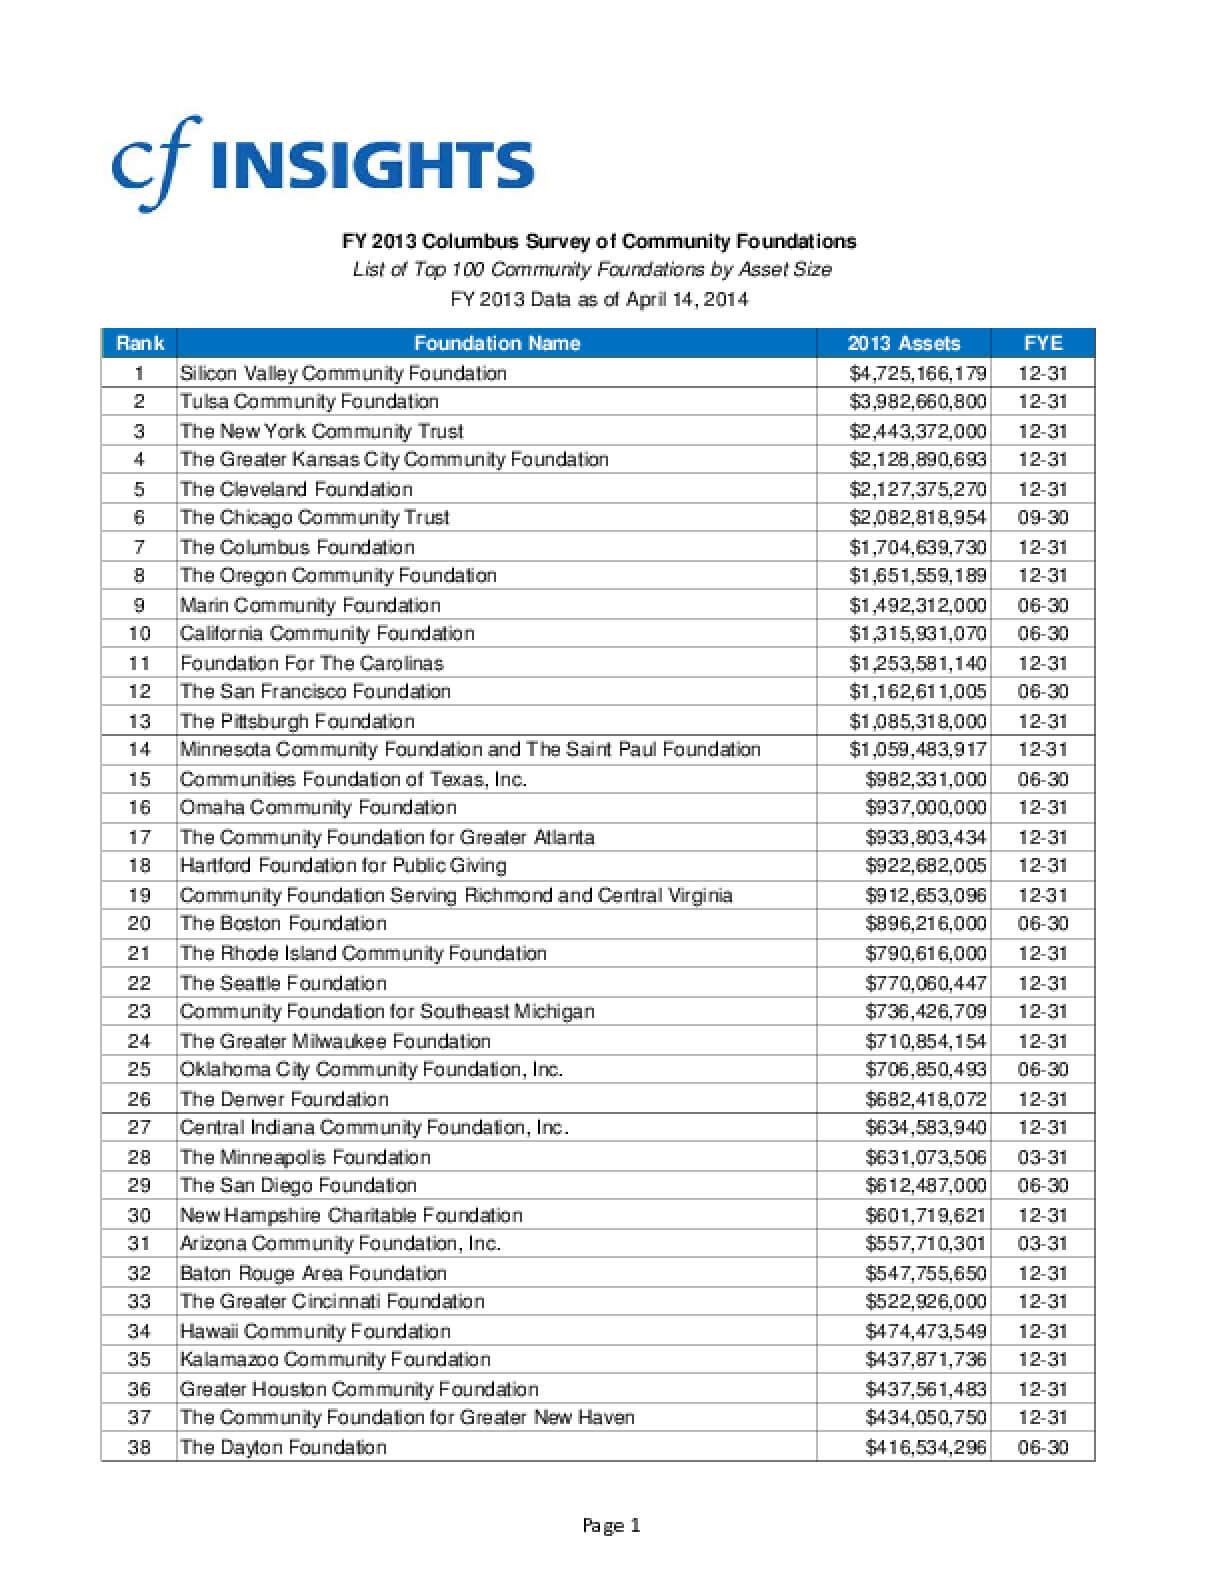 2013 Columbus Survey of Community Foundations: List of Top 100 Community Foundations by Asset Size